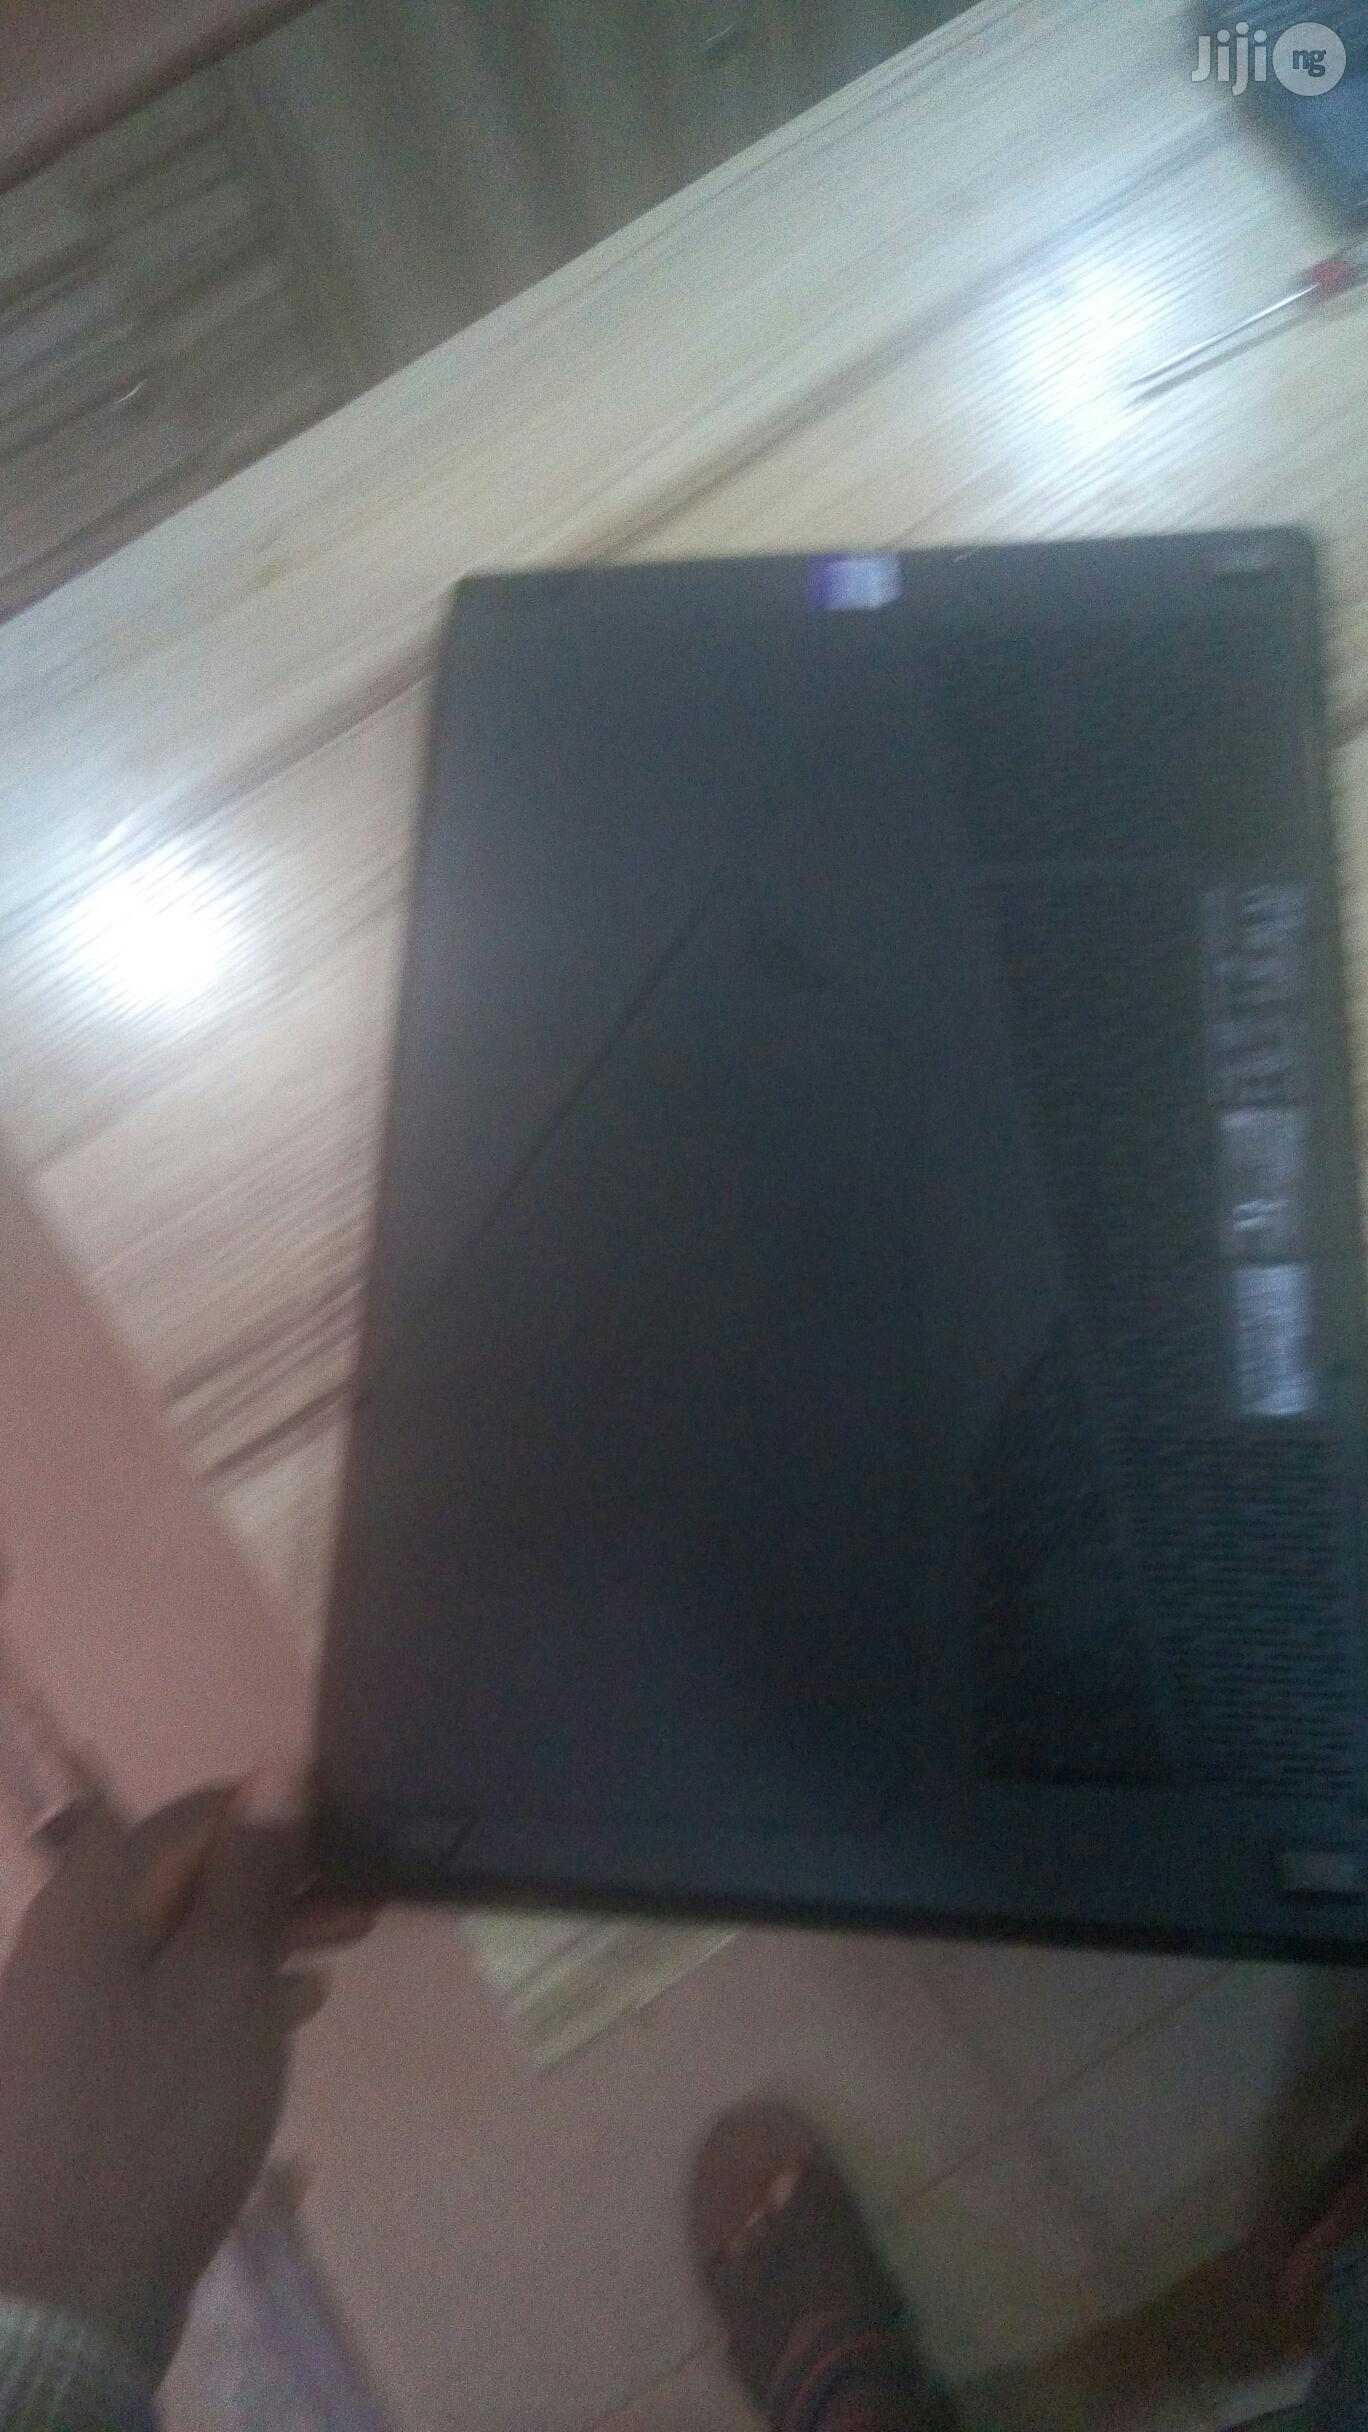 Laptop Asus ROG Strix GL503 16GB Intel Core I7 HDD 1T   Laptops & Computers for sale in Wuse, Abuja (FCT) State, Nigeria